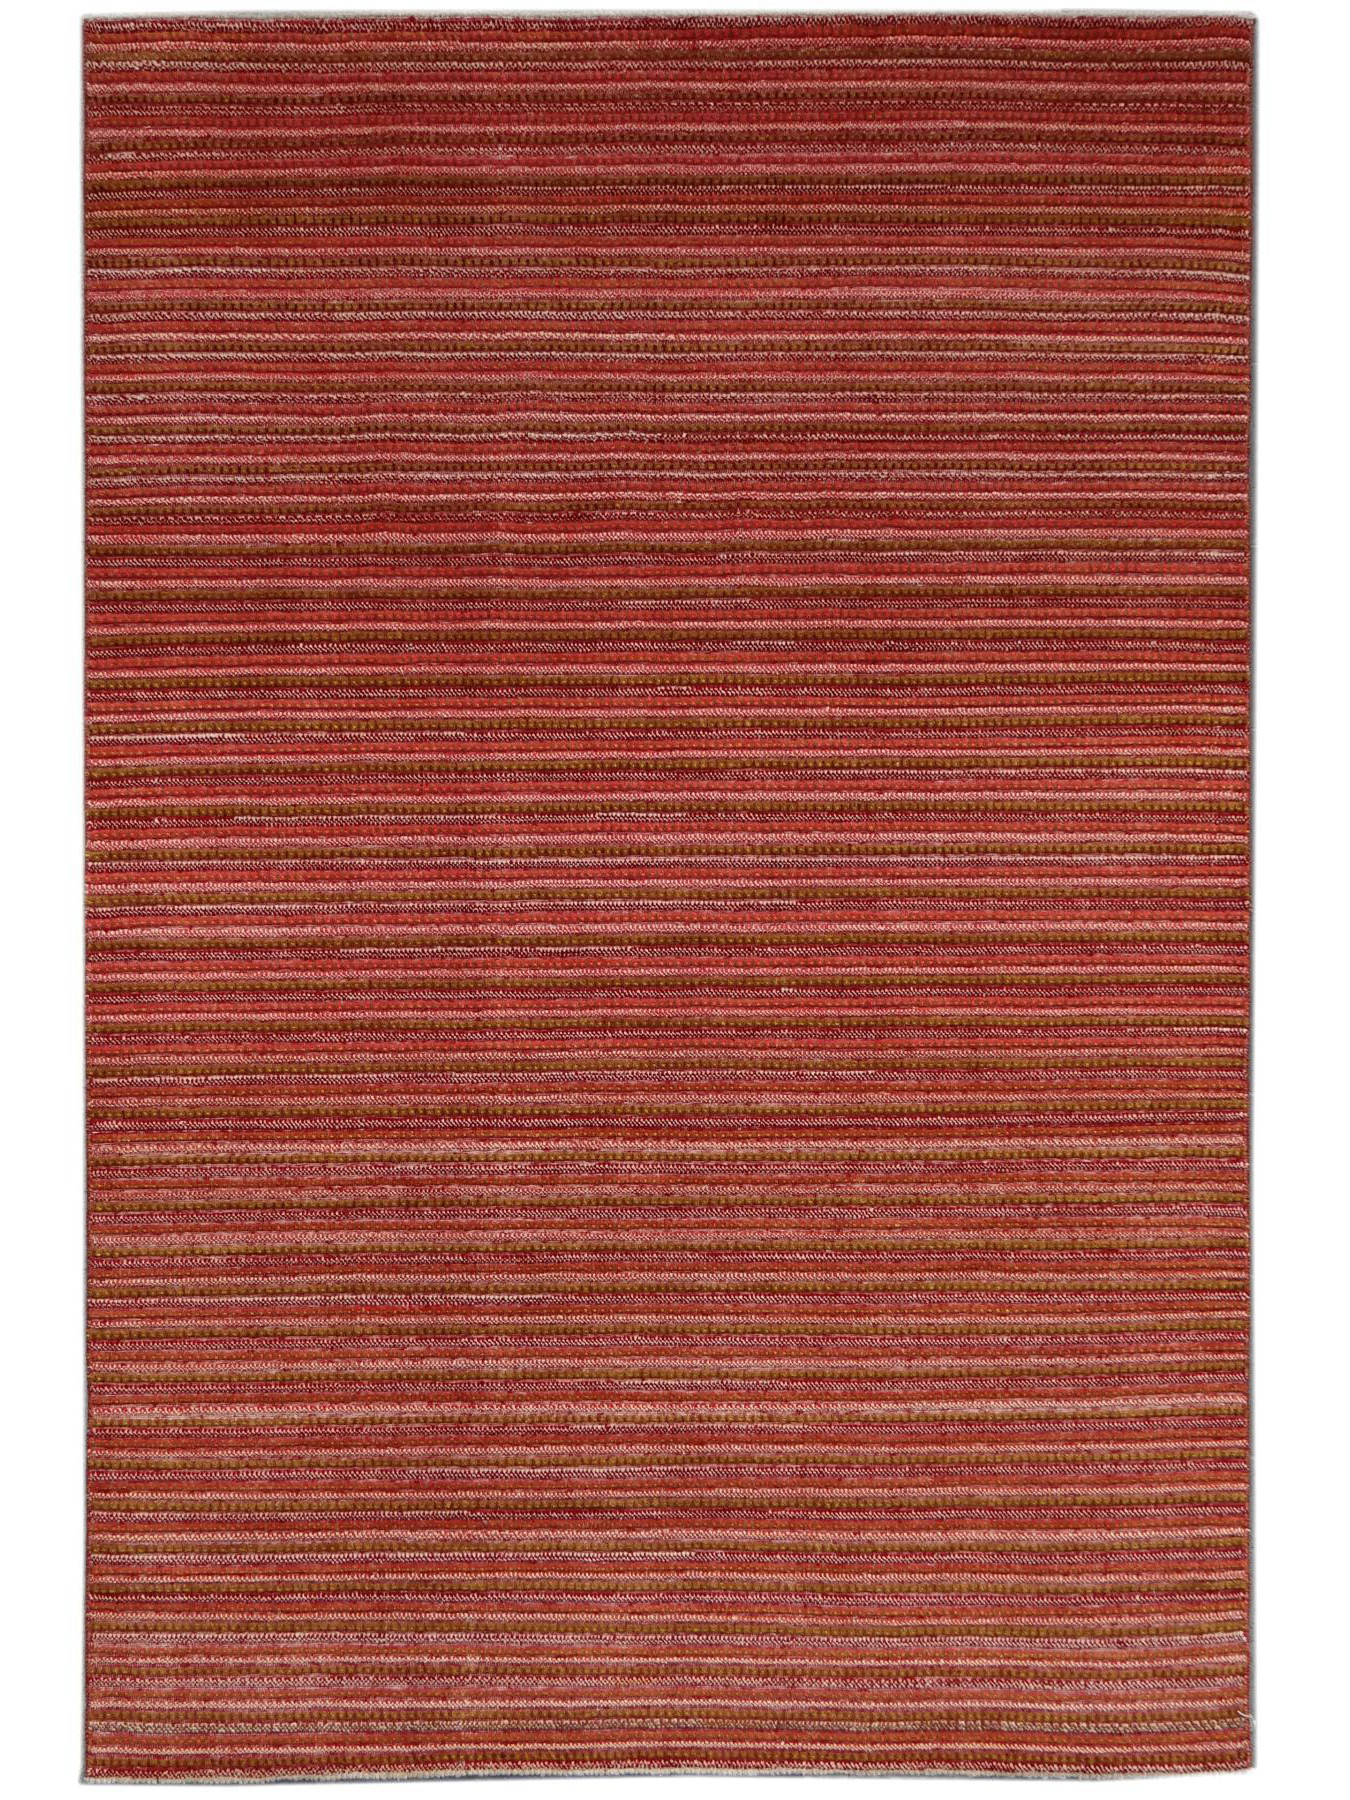 Ethnic carpets - ETHNIC STRIPES